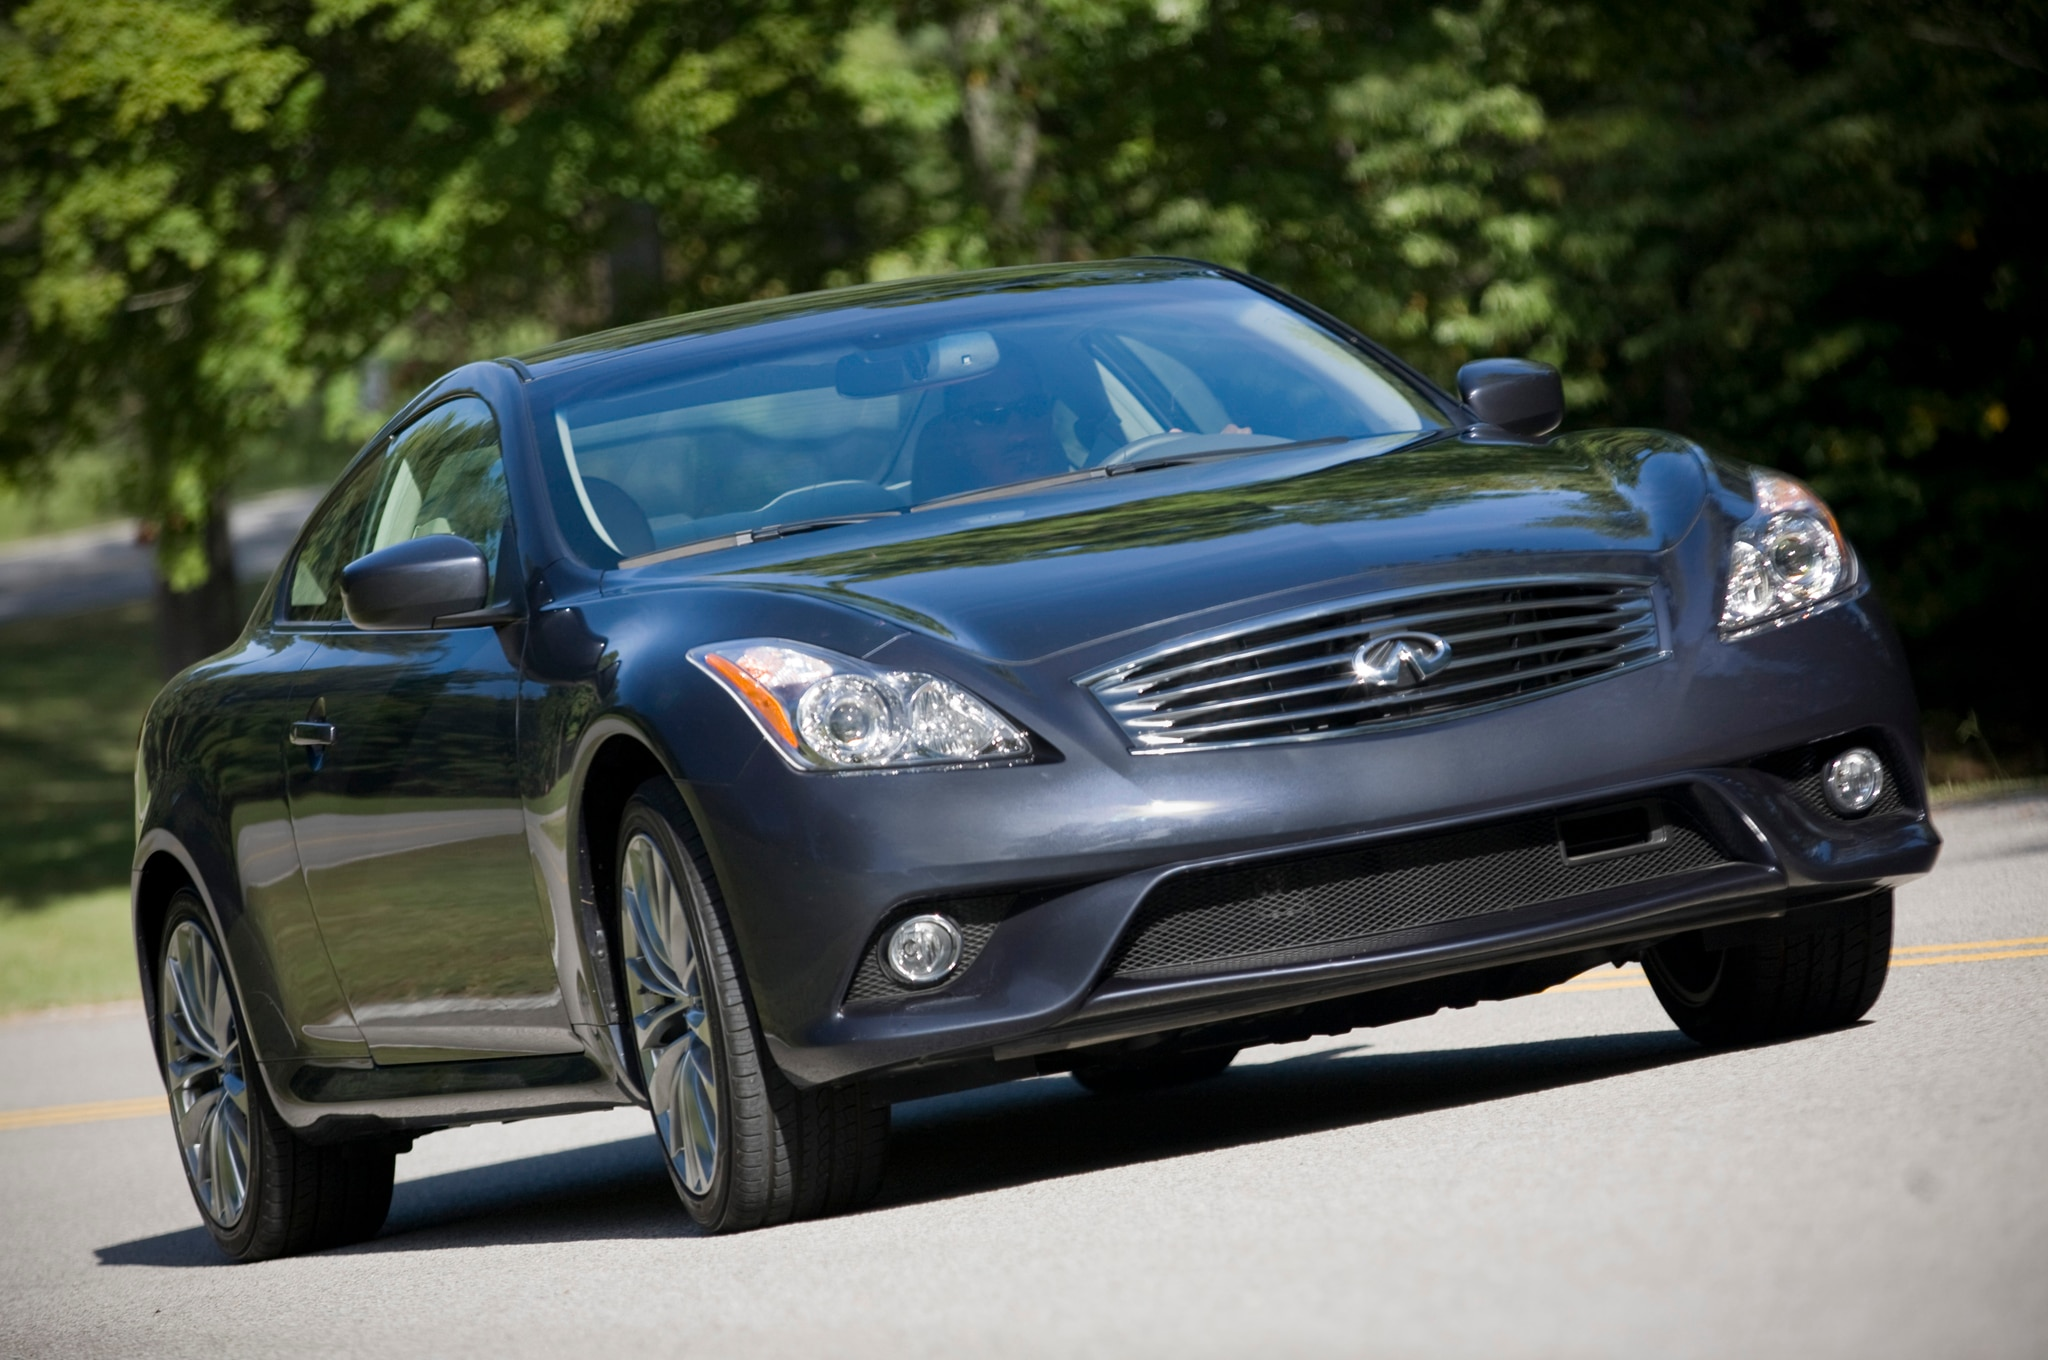 2013 Infiniti G37 Journey >> 2013 Infiniti IPL G37 Convertible - Editors' Notebook - Automobile Magazine